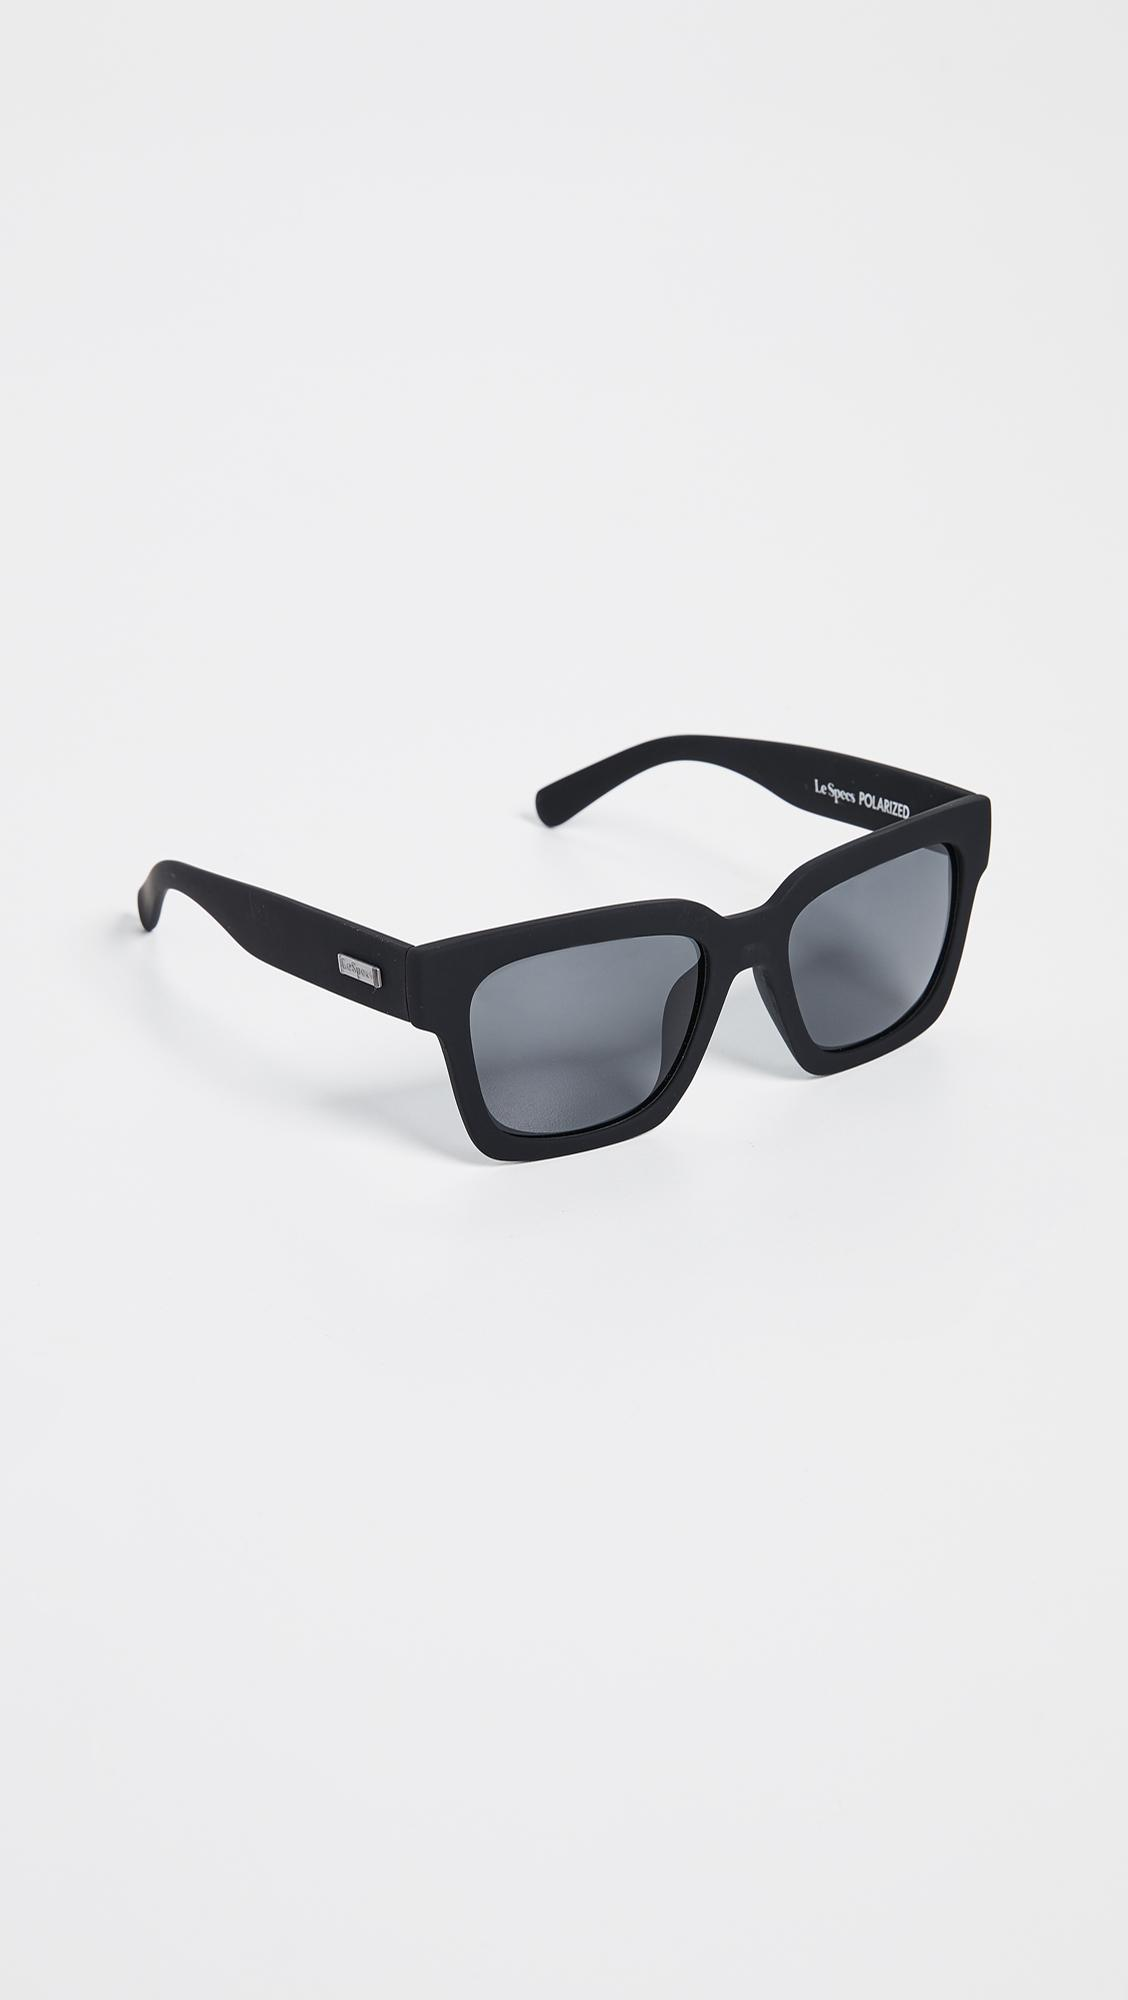 f030c48012c ... Black Weekend Riot Polarized Sunglasses - Lyst. View fullscreen